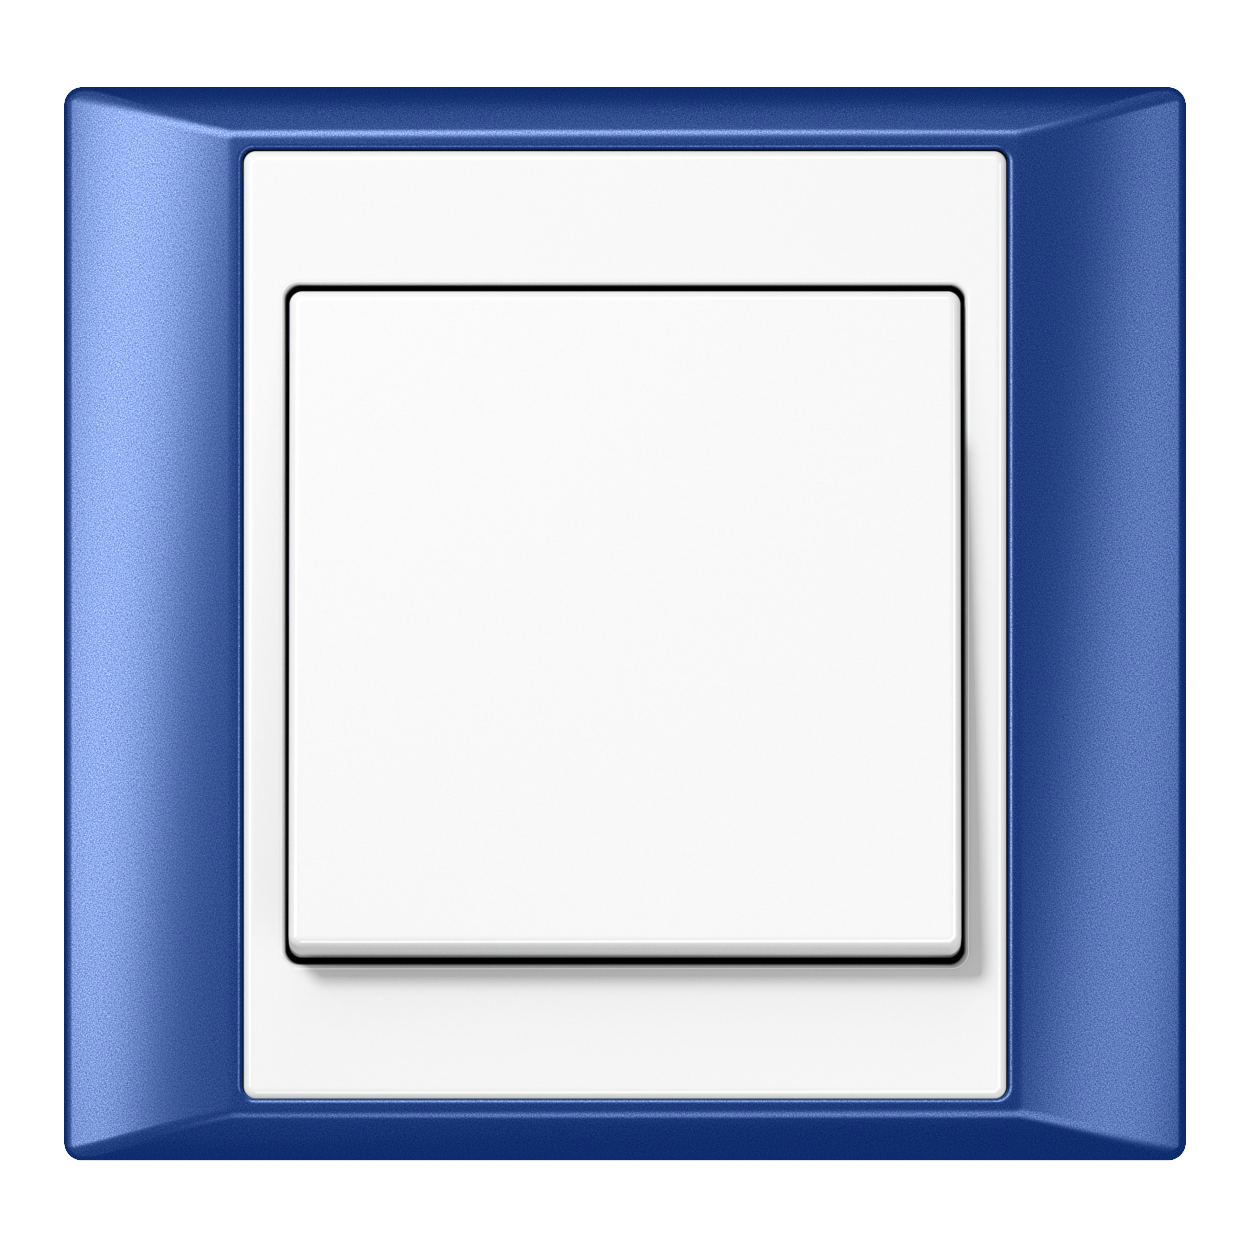 JUNG_Aplus_blue-white_switch